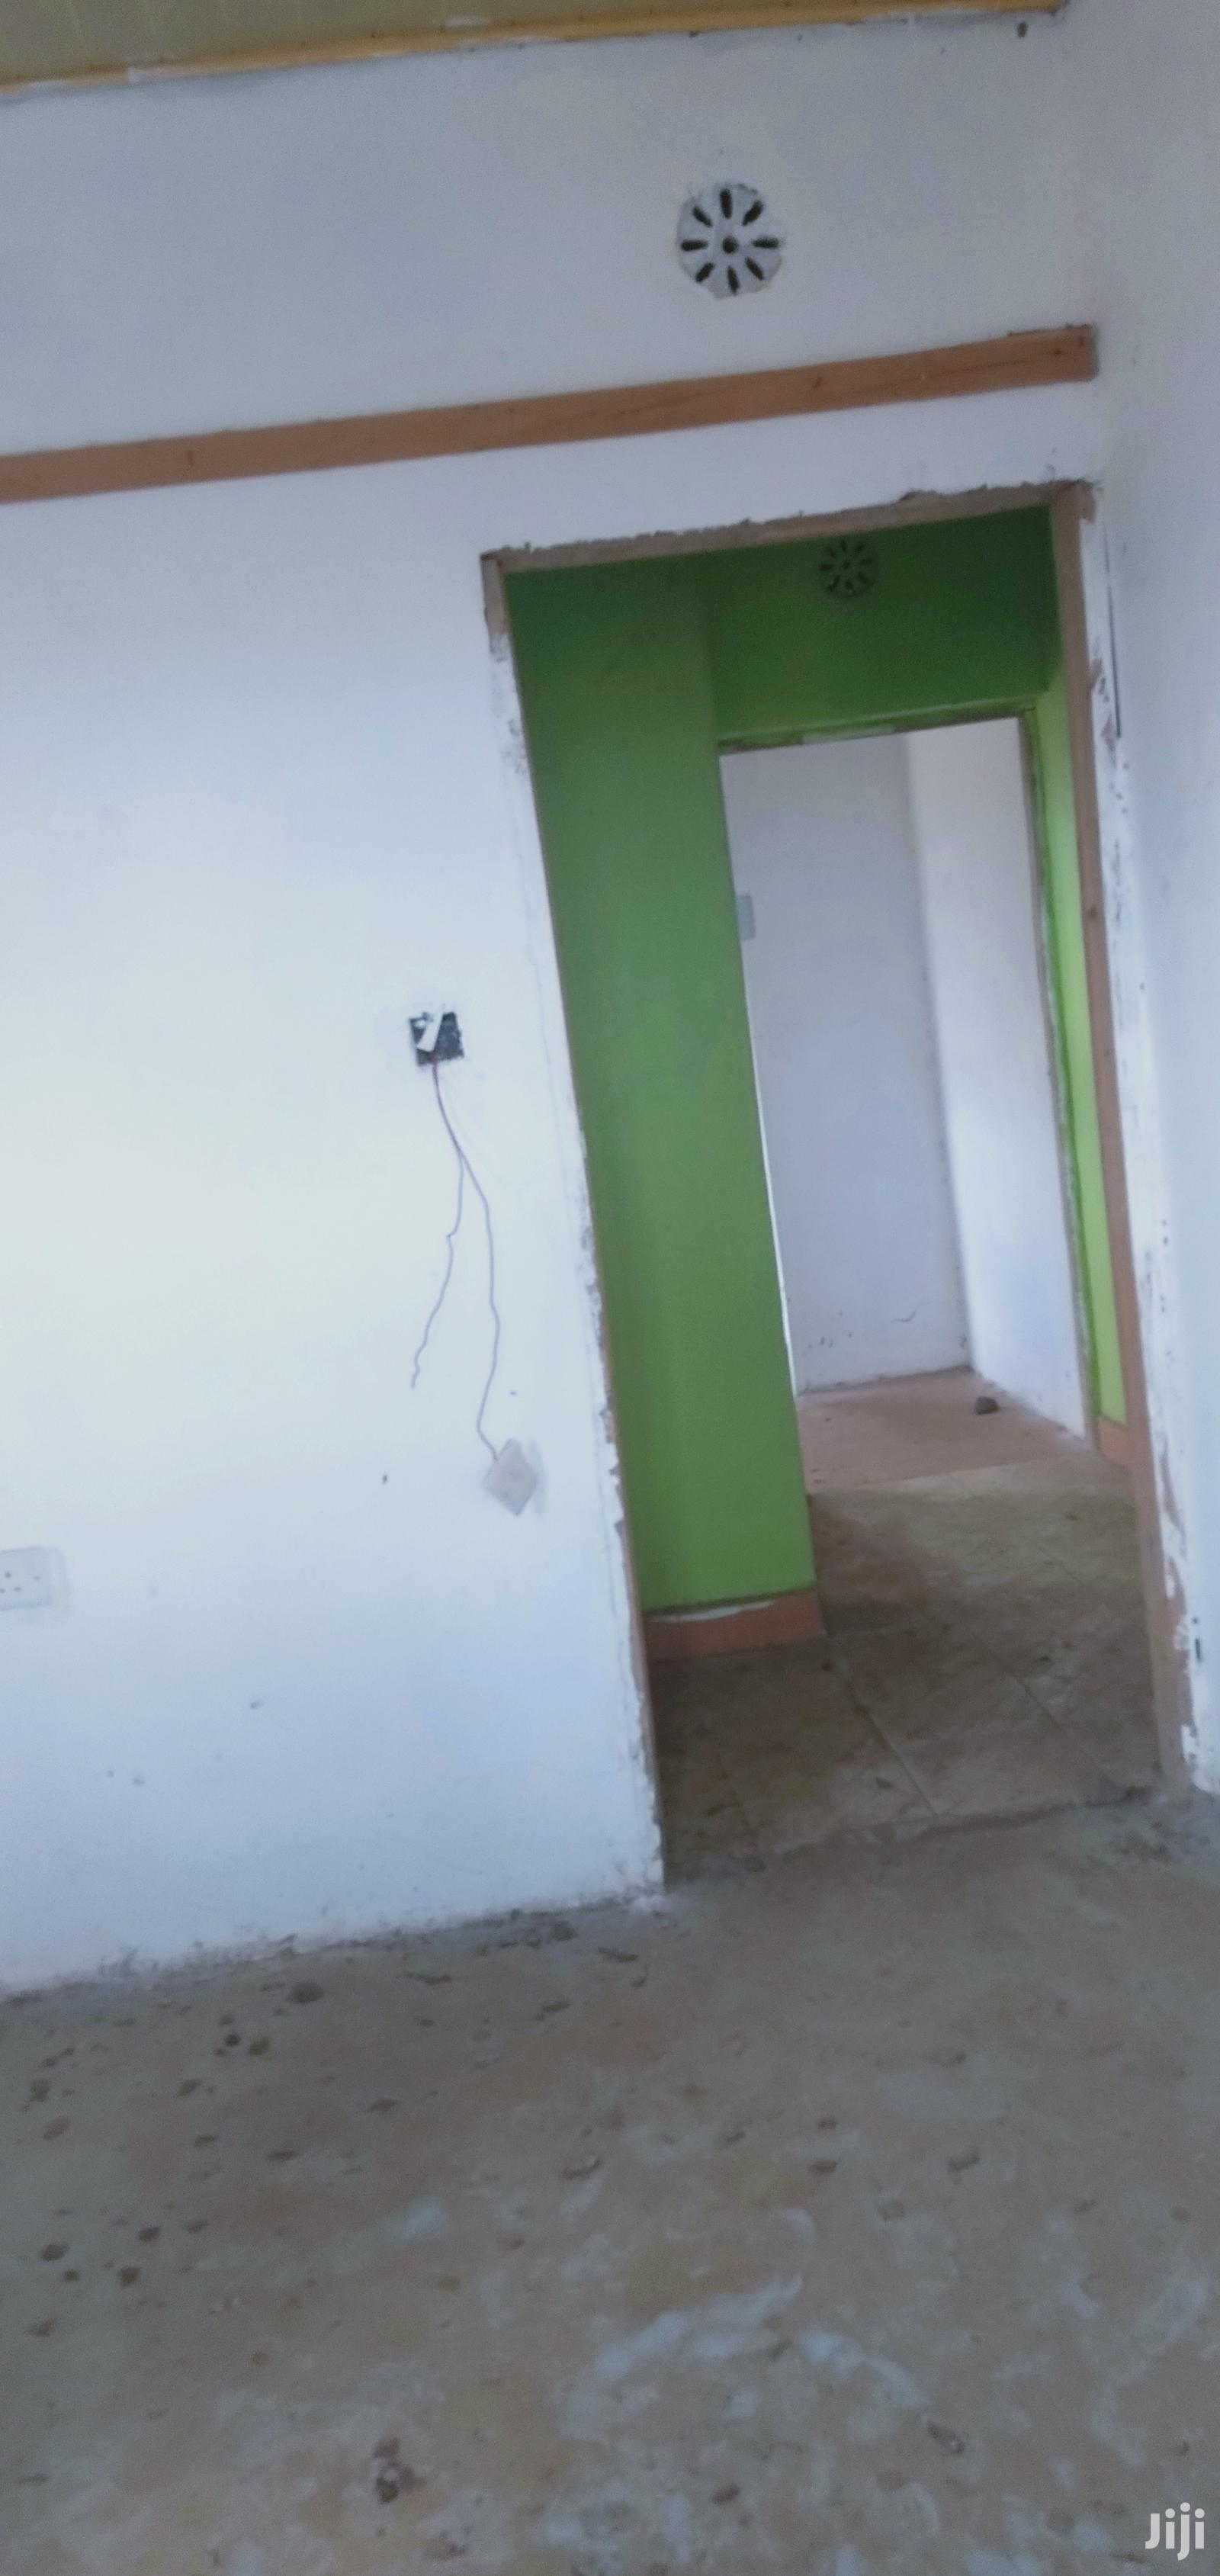 A 3 Bedroomed Bungalow For Sale | Houses & Apartments For Sale for sale in Thika, Kiambu, Kenya